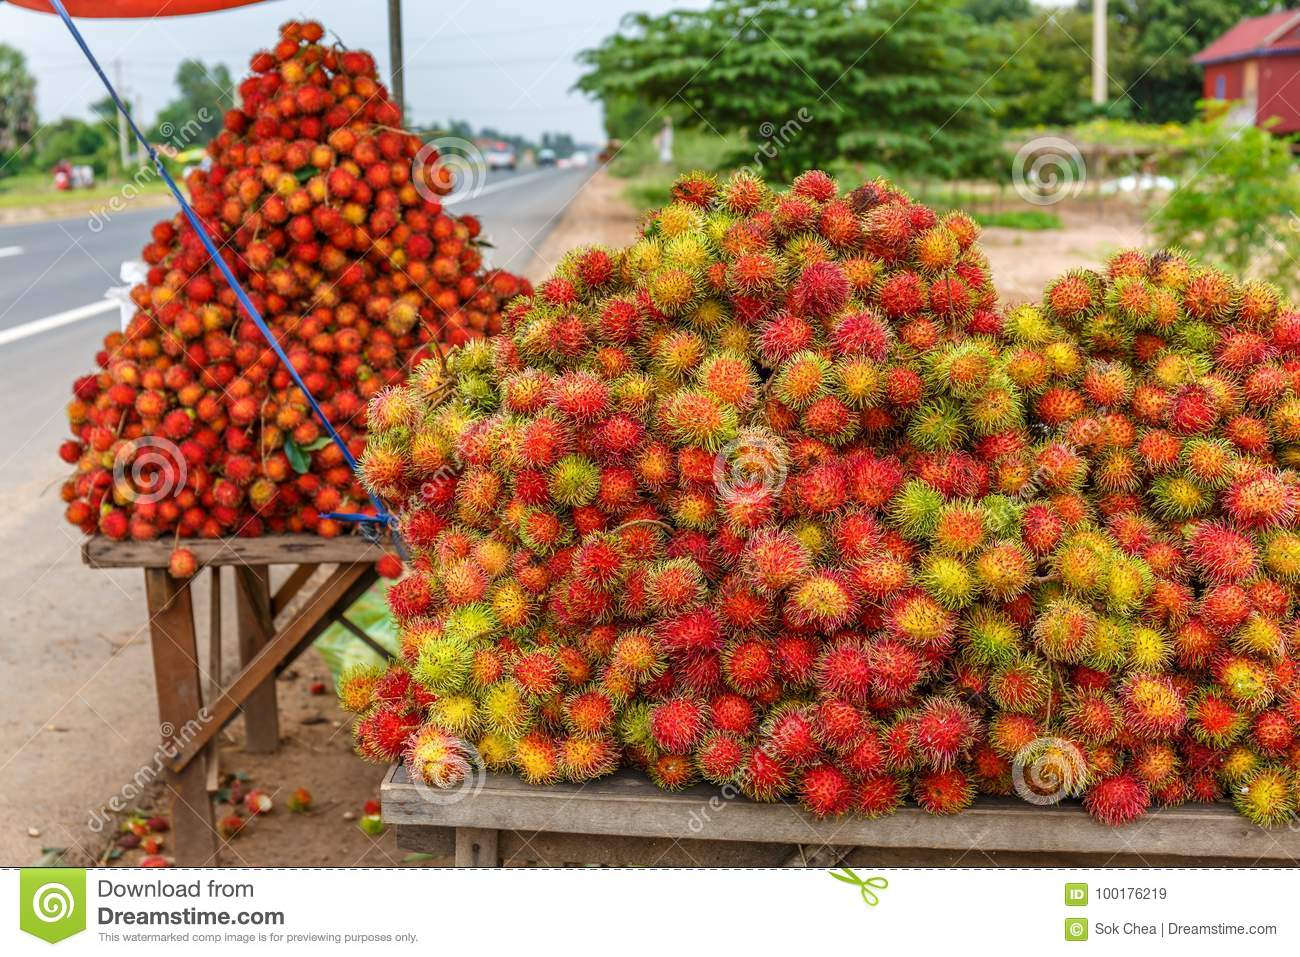 Fresh Ripe Rambutan Displayed for Sale along Highway Is the Popular Healthy Street Food Business